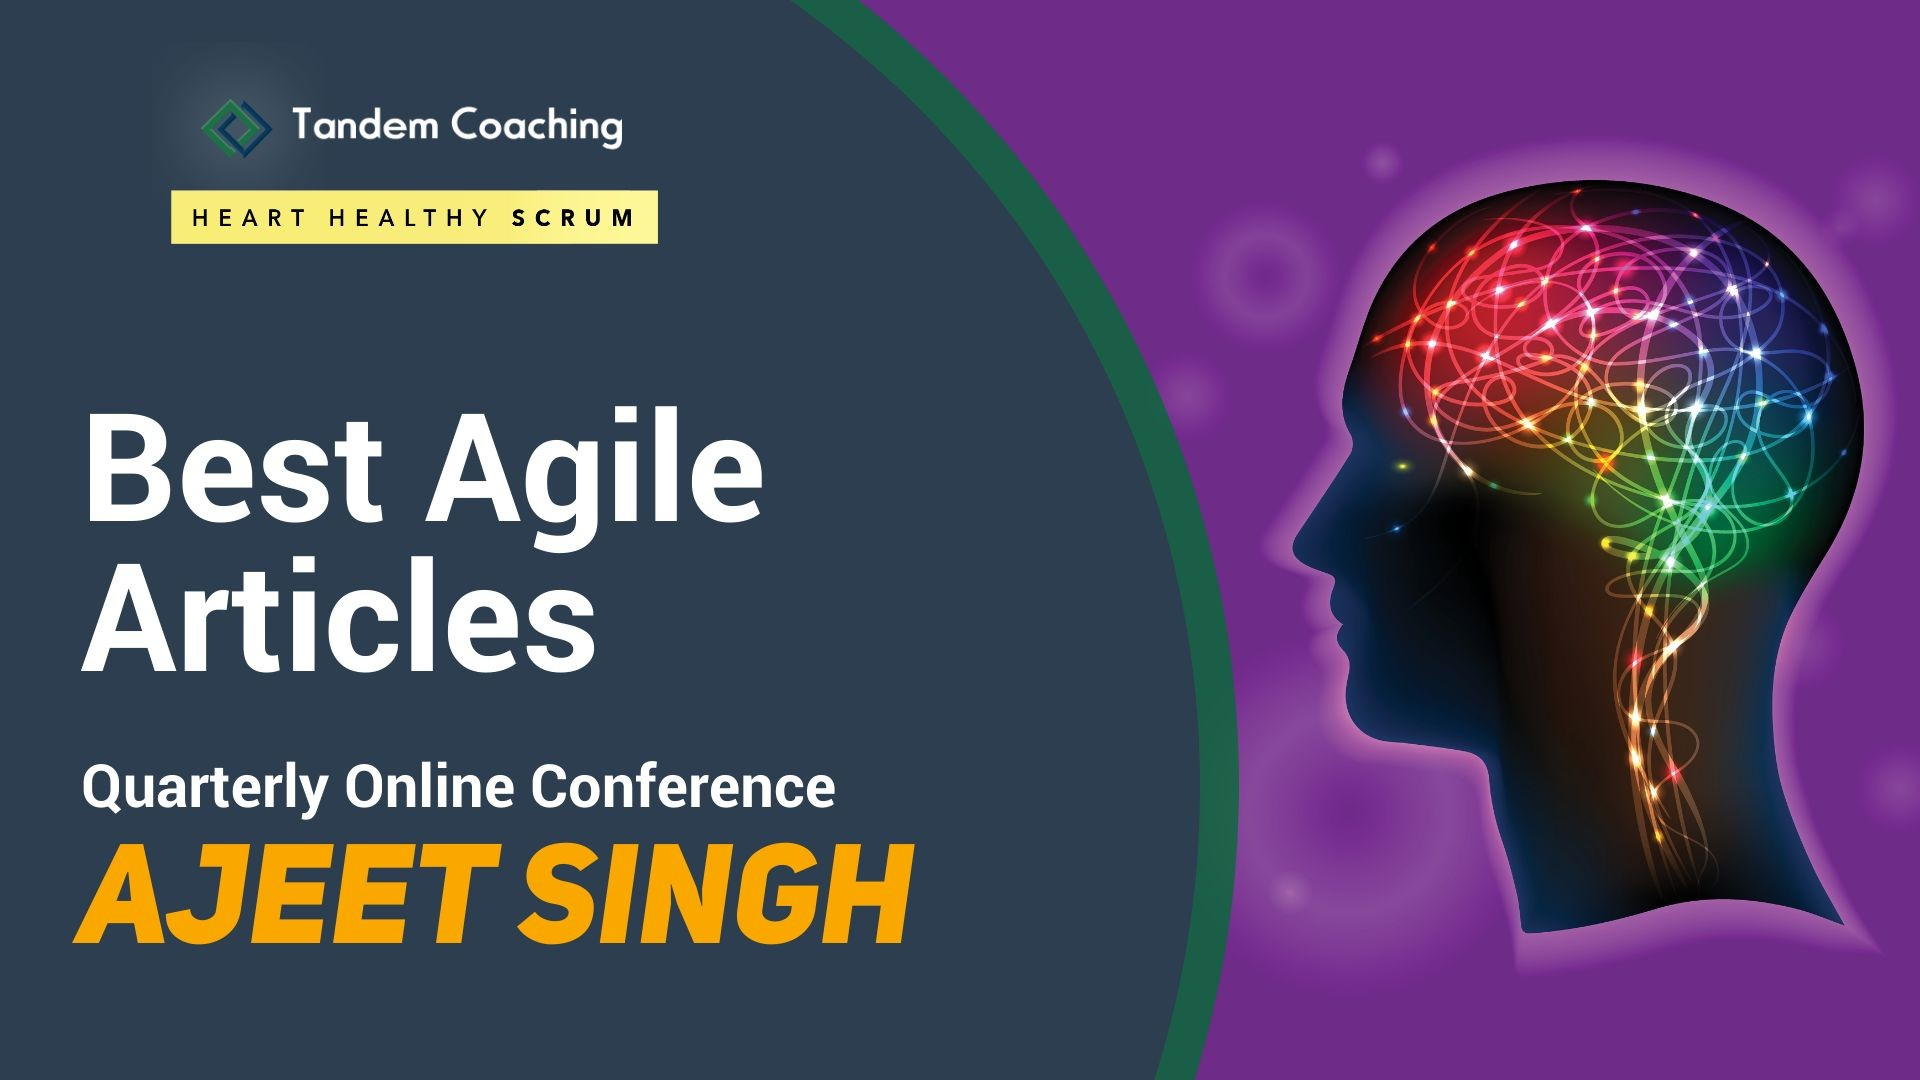 Best Agile Articles Online Conference - Ajeet Singh